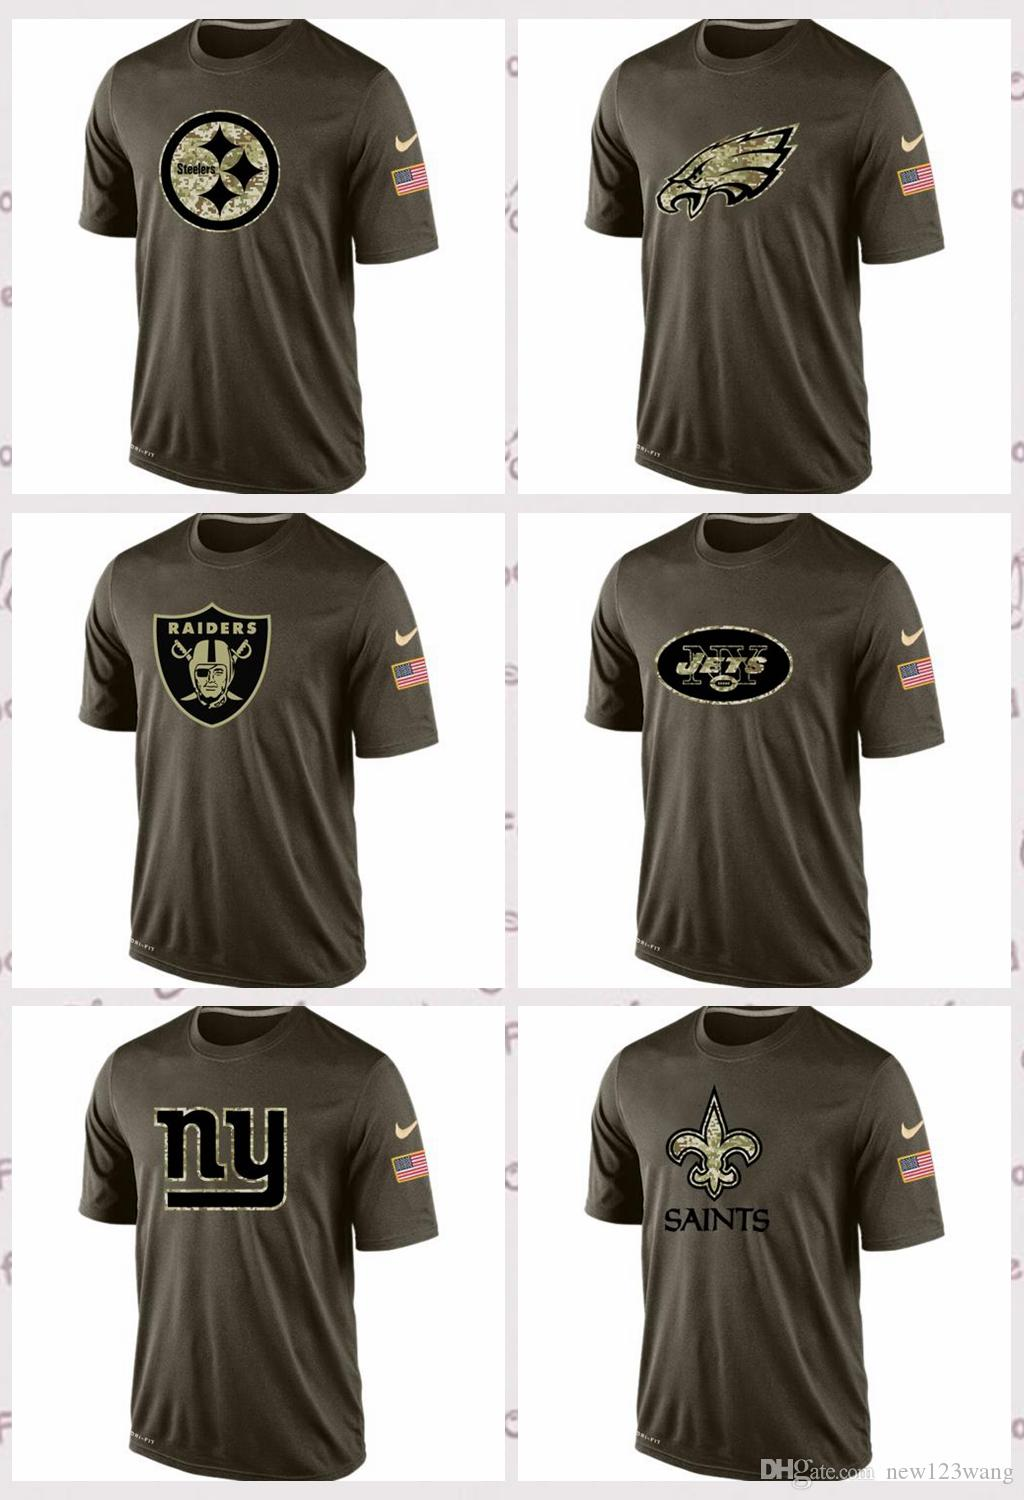 save off 3561b d8ed0 2019 New Orleans Saints New York Giants New York Jets Oakland Raiders  Philadelphia Eagles Pittsburgh Steelers Salute To Service T Shirt From  Hxxy99, ...